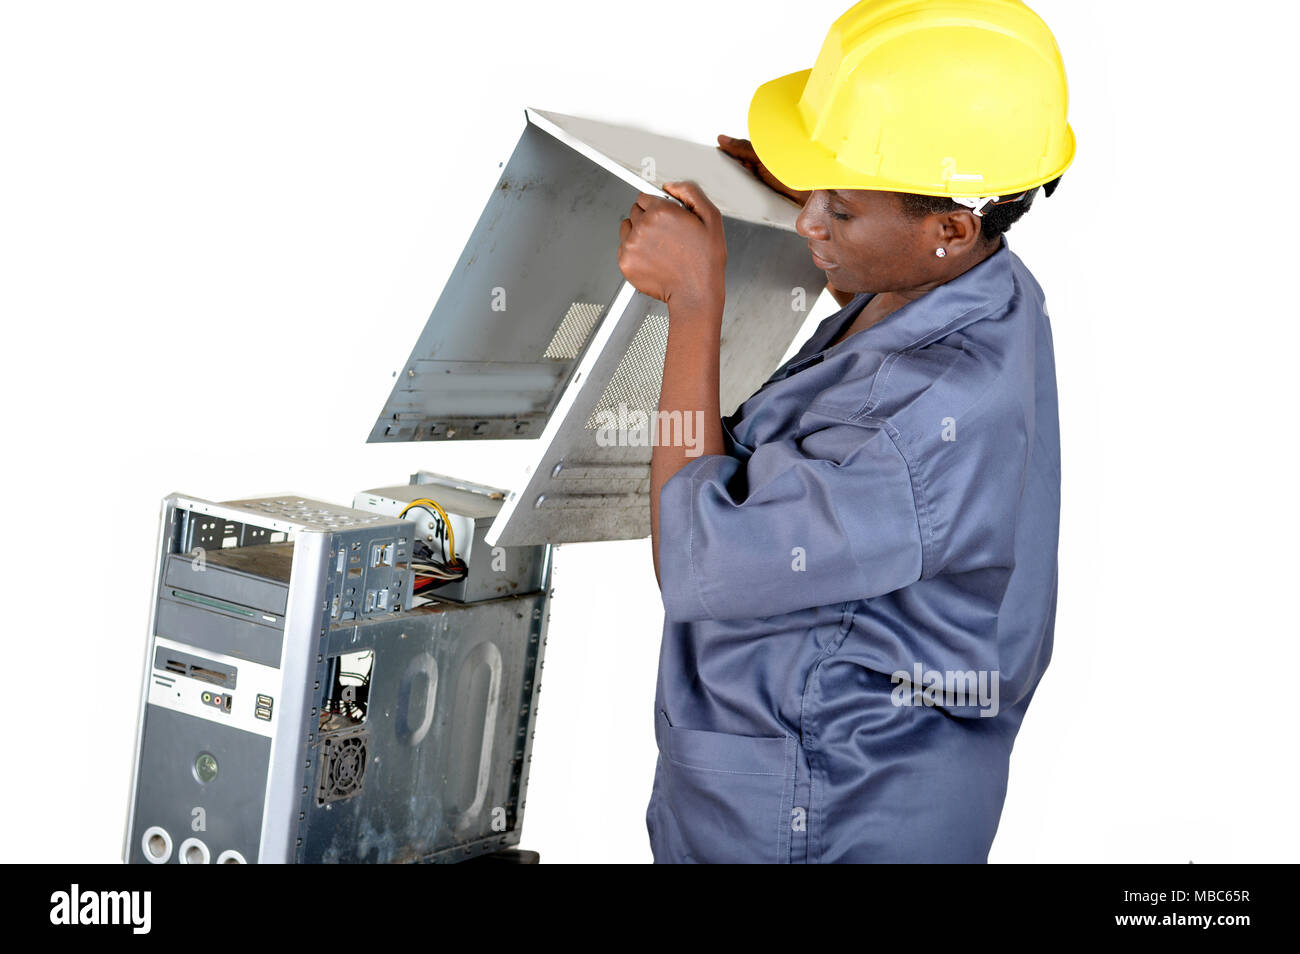 Young computer maintenance technician opens a desktop computer to locate the breakdown - Stock Image